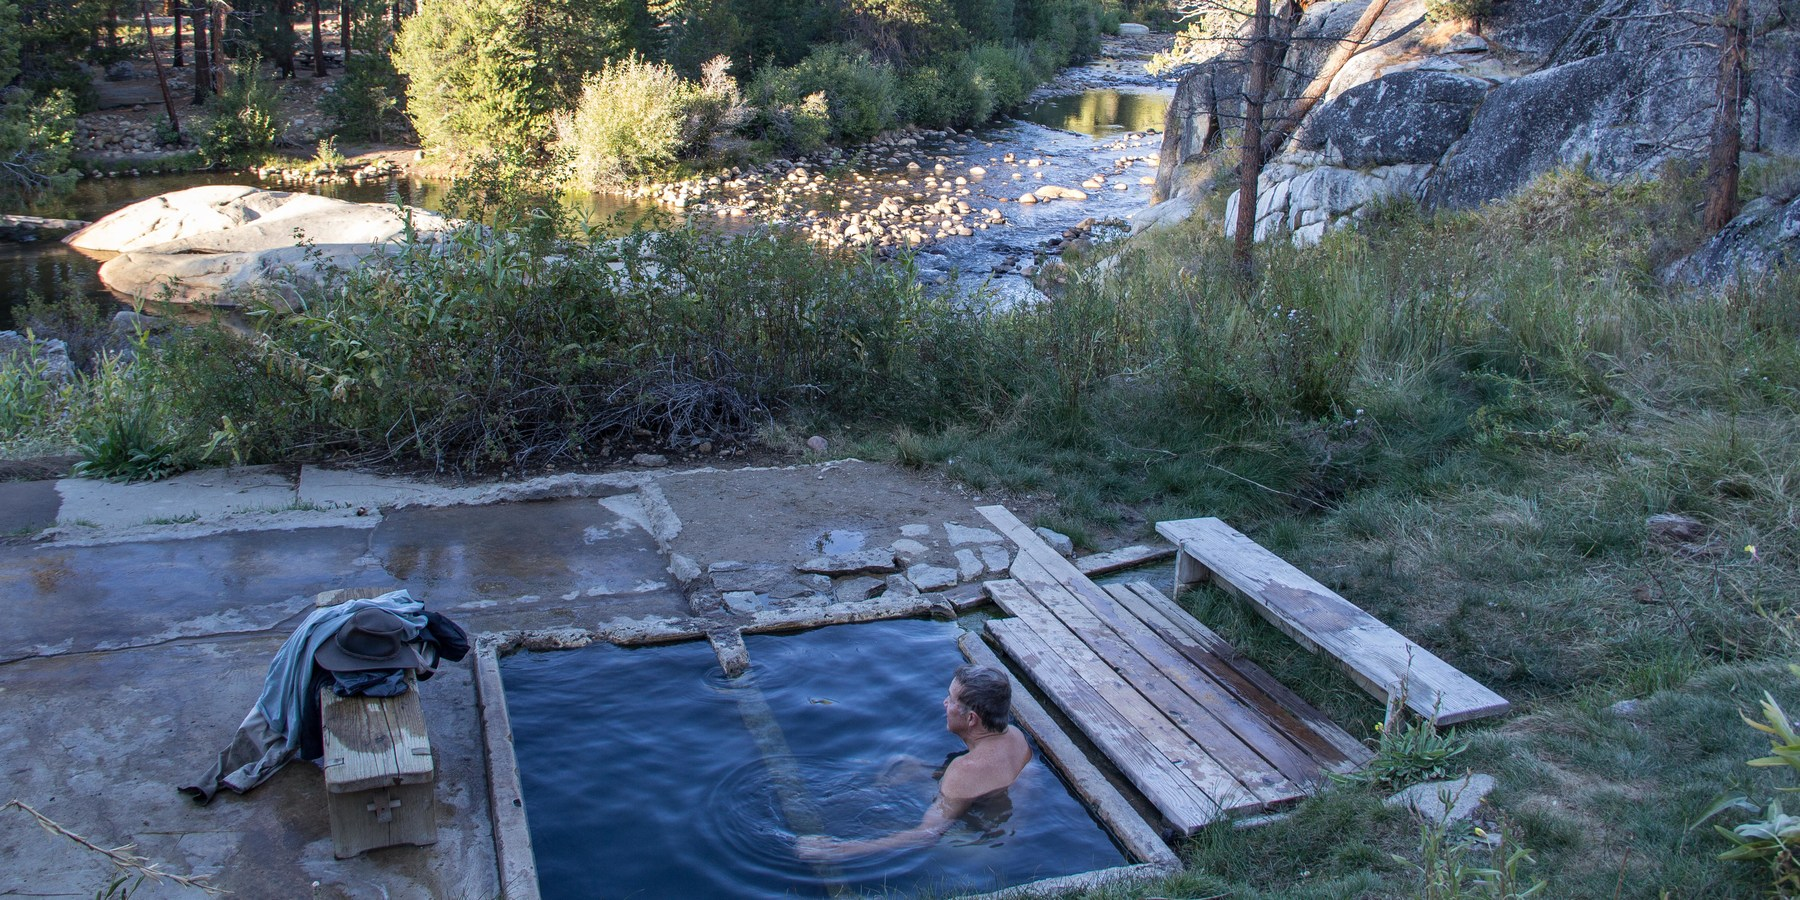 california hot springs chat People have been soaking in california hot springs and thermal pools for hundreds of years but where do you find these hot springs are they packed with people do you have to pay.